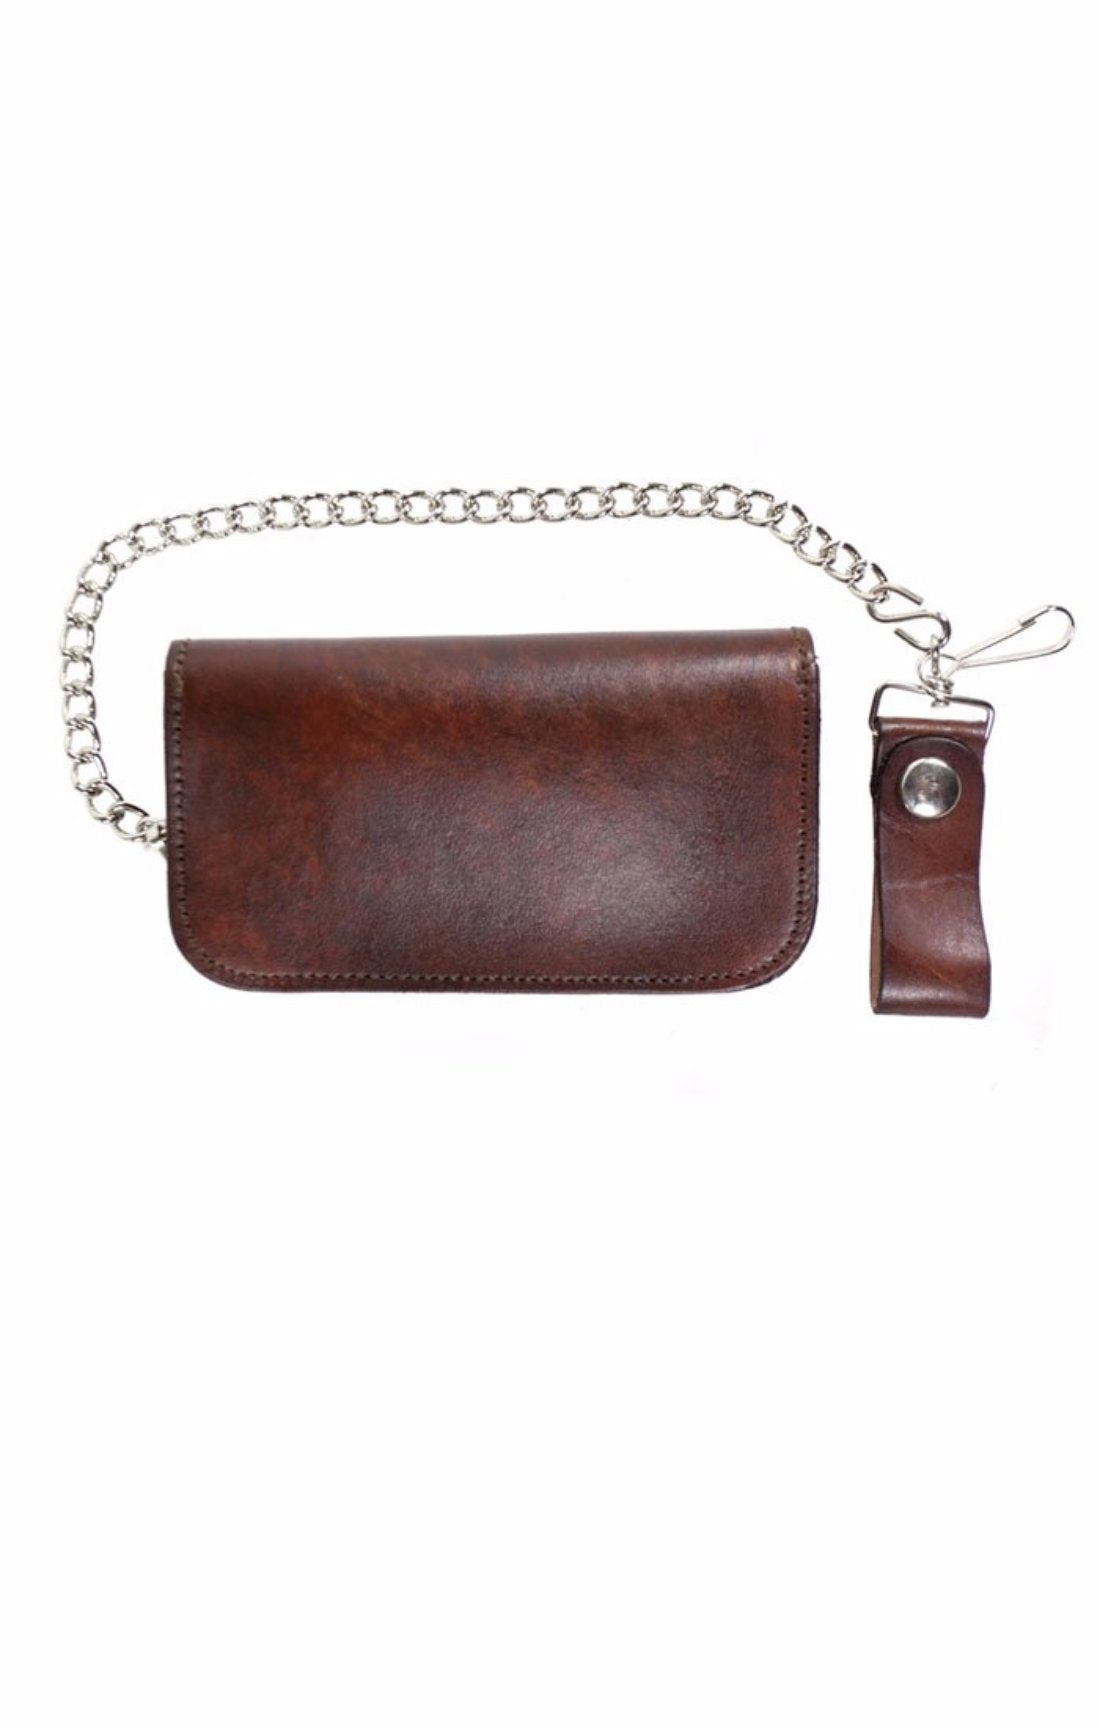 The IRON HORSE Wallet